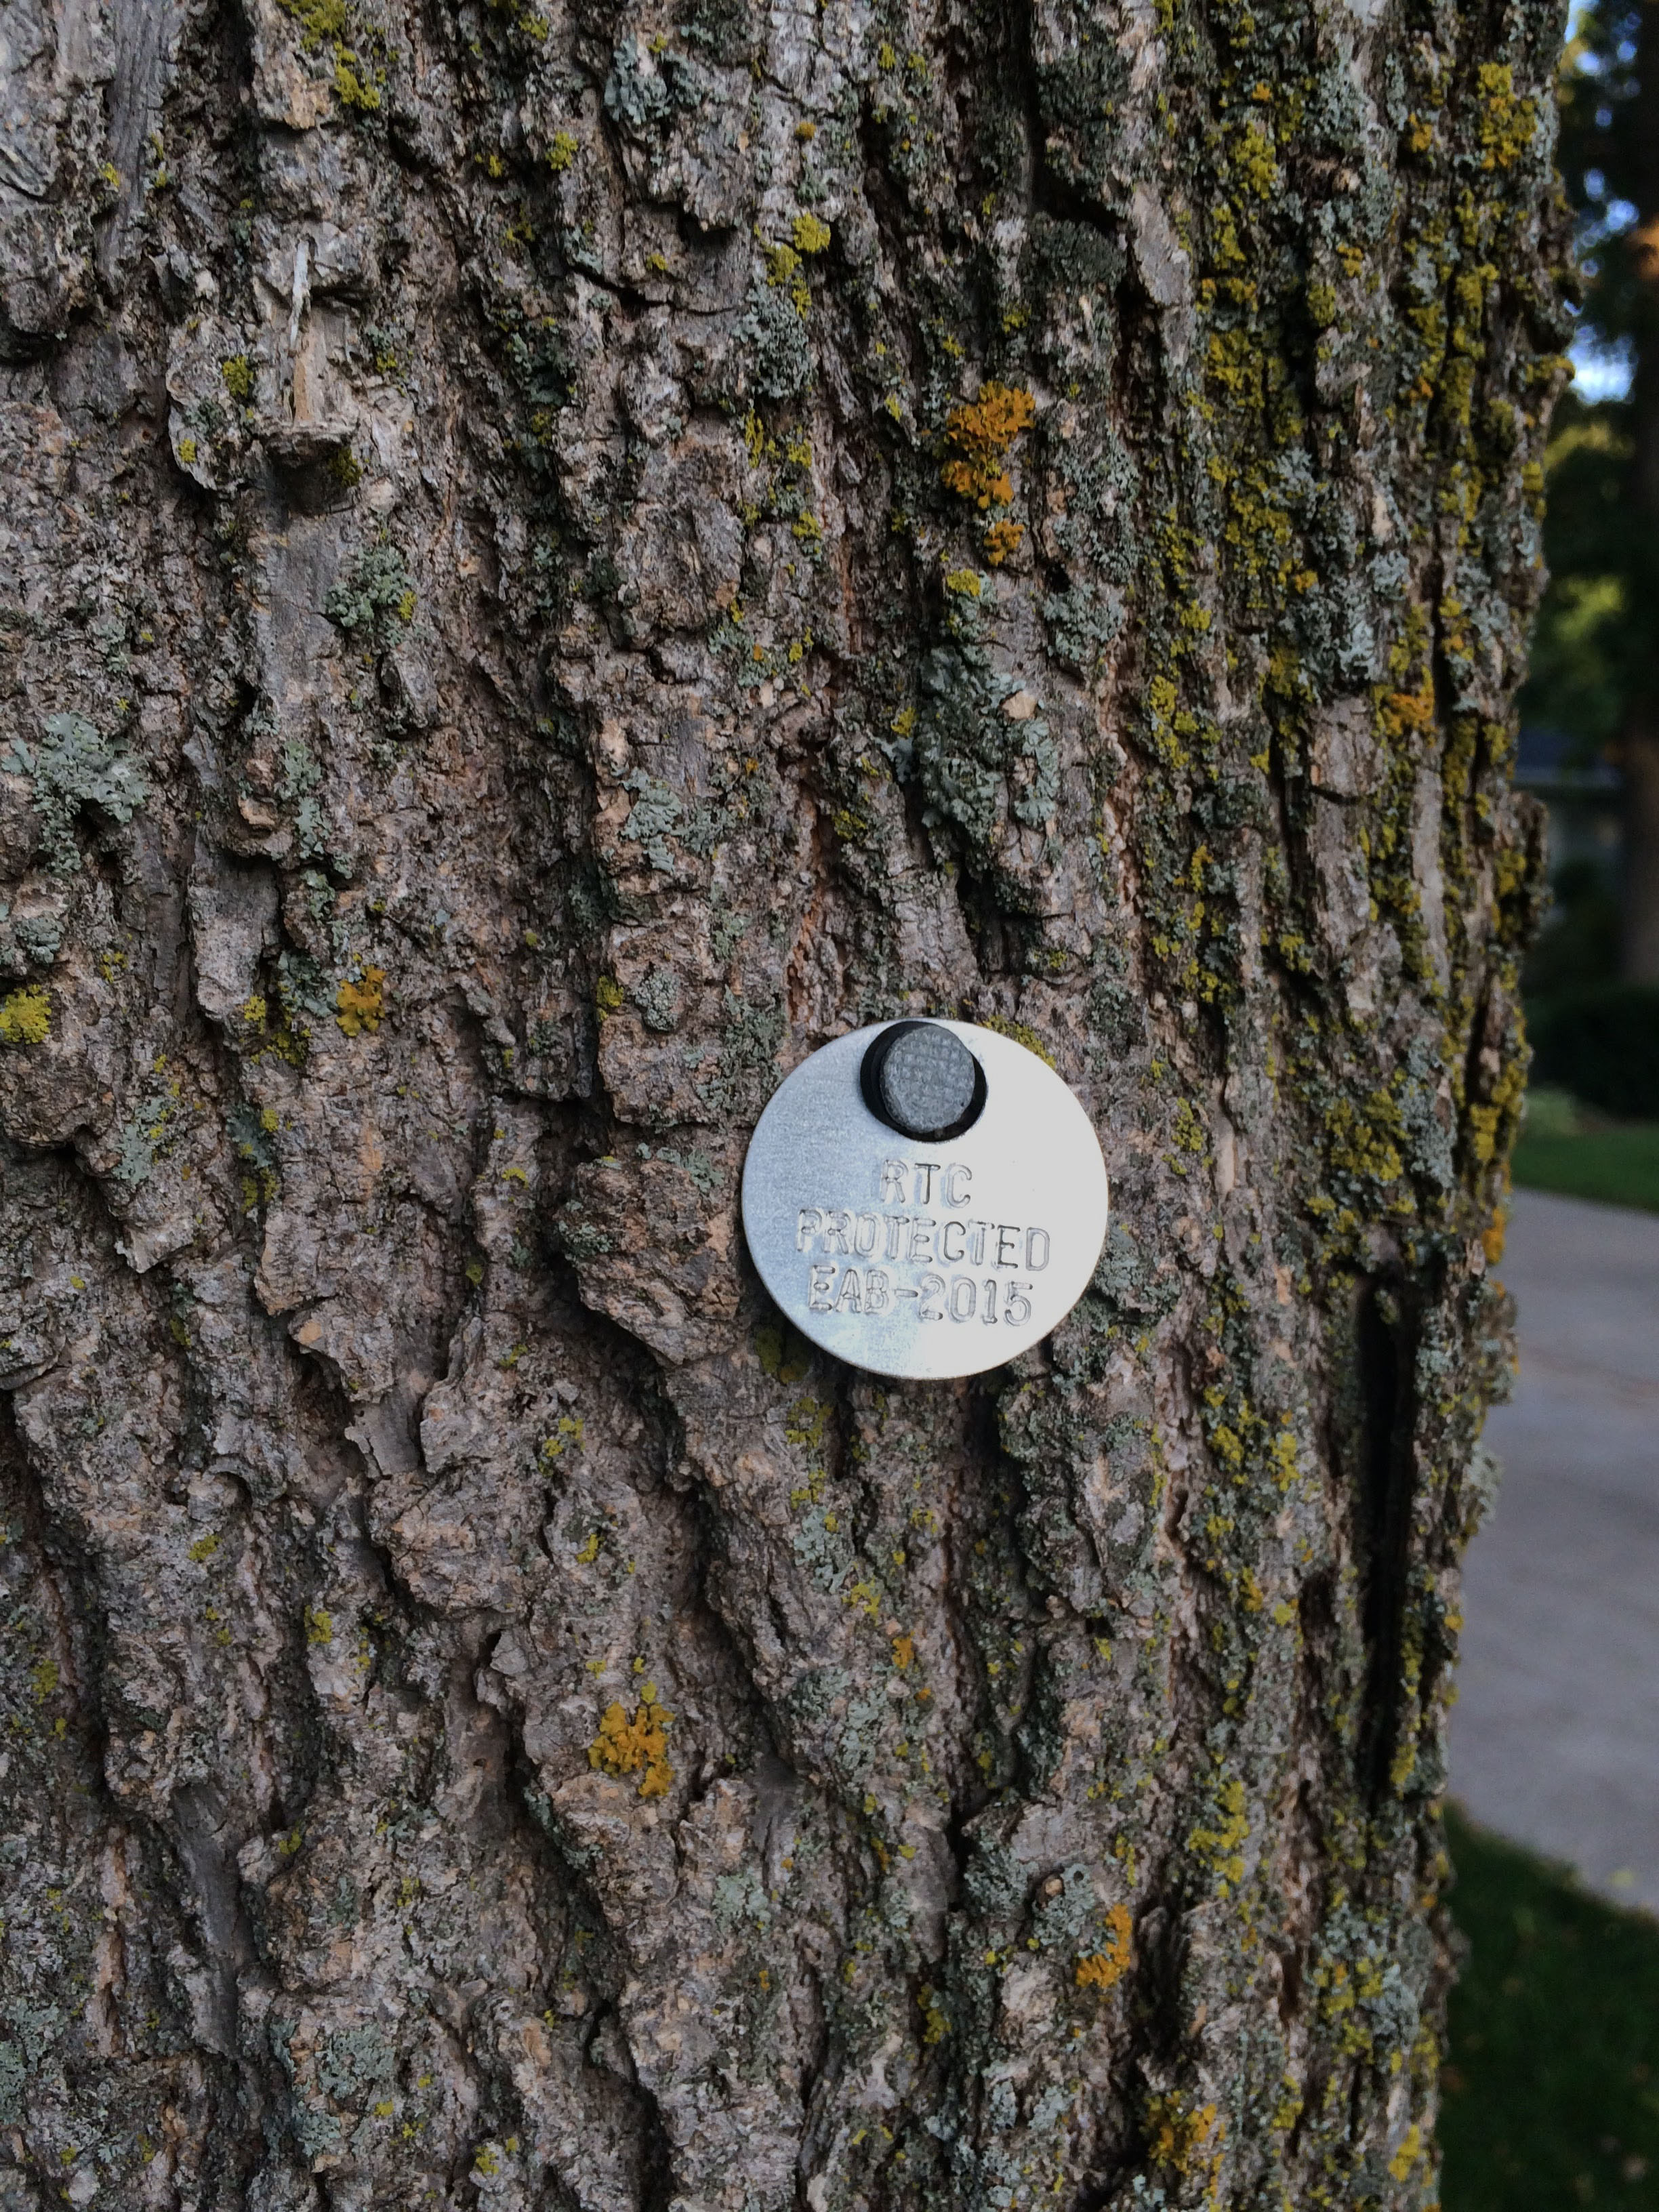 Metal tags identify ash trees protected from EAB.